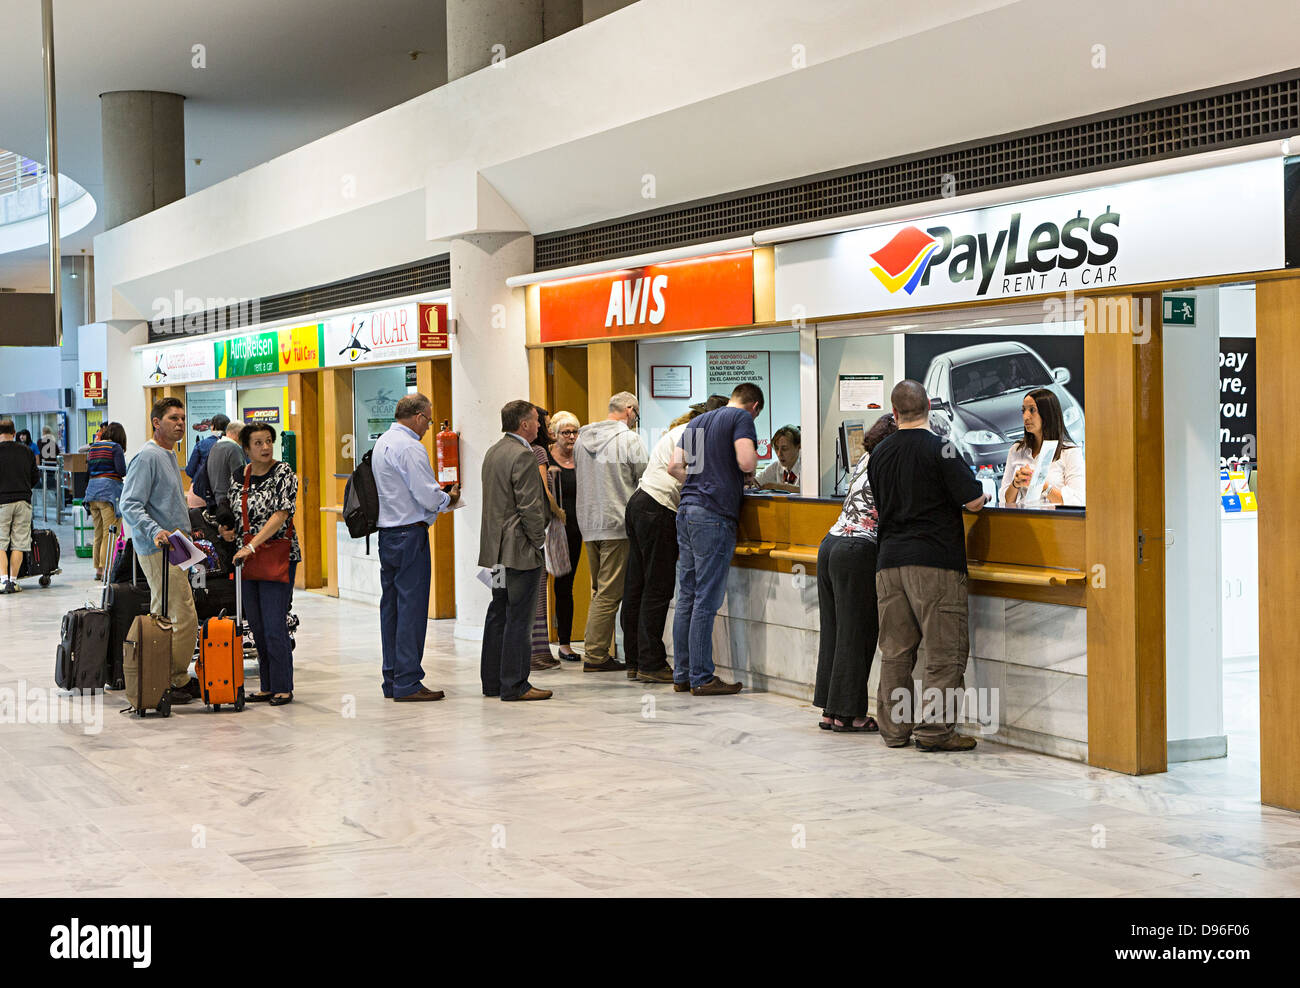 Car hire desks arrecife airport lanzarote canary islands spain stock image